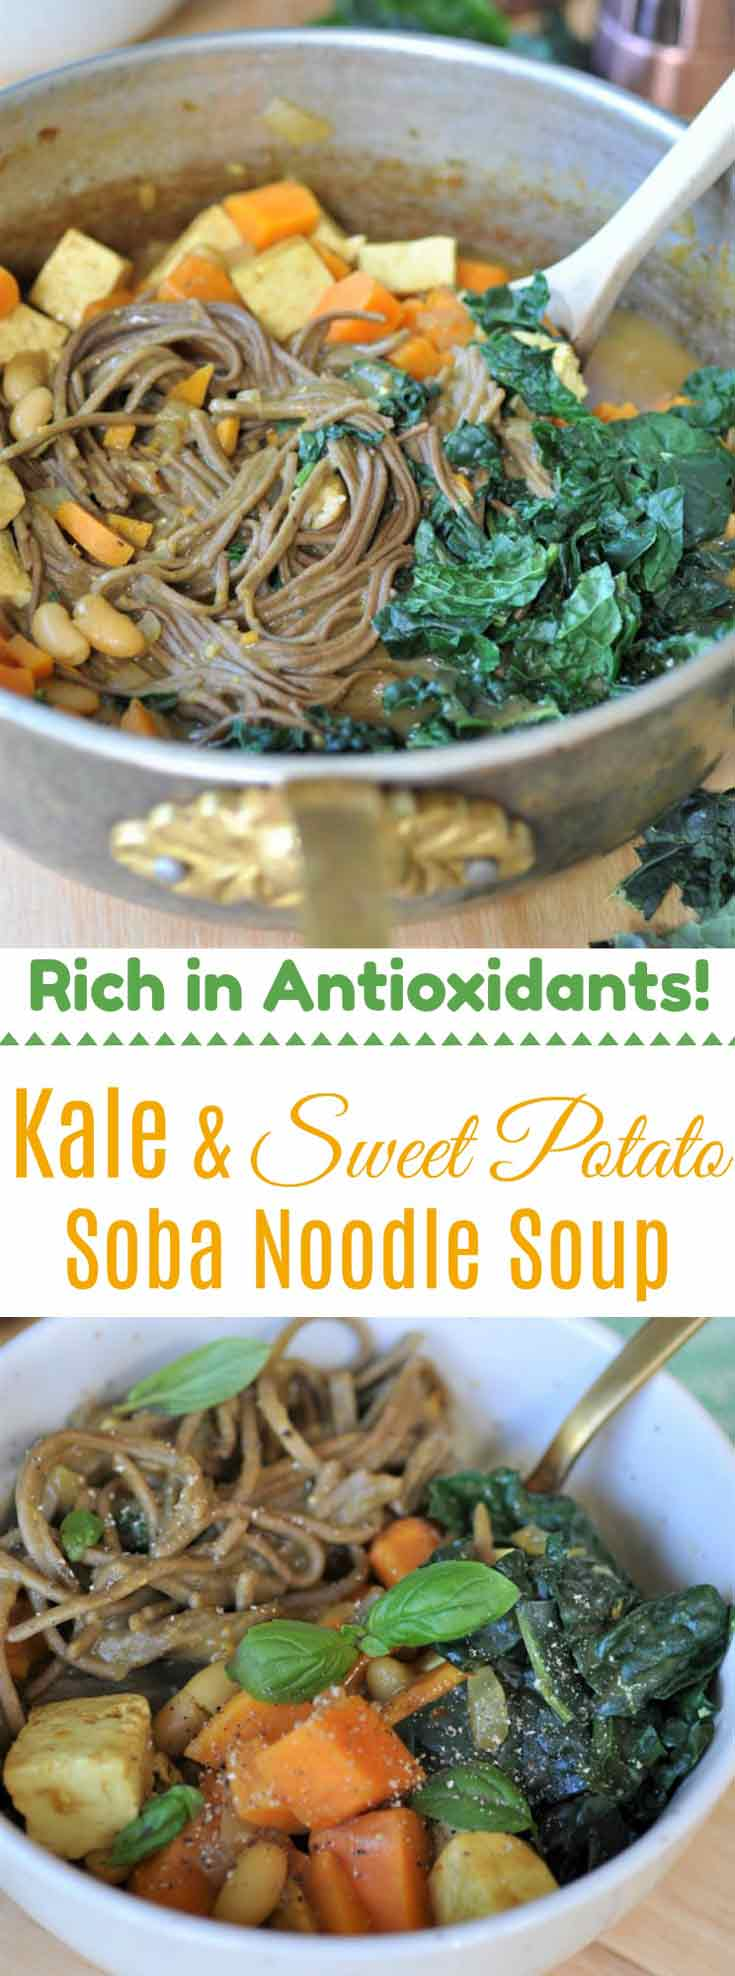 Sweet Potato & Kale Soba Noodle Soup with tofu and white beans. Vegan, easy to make, and healthy!